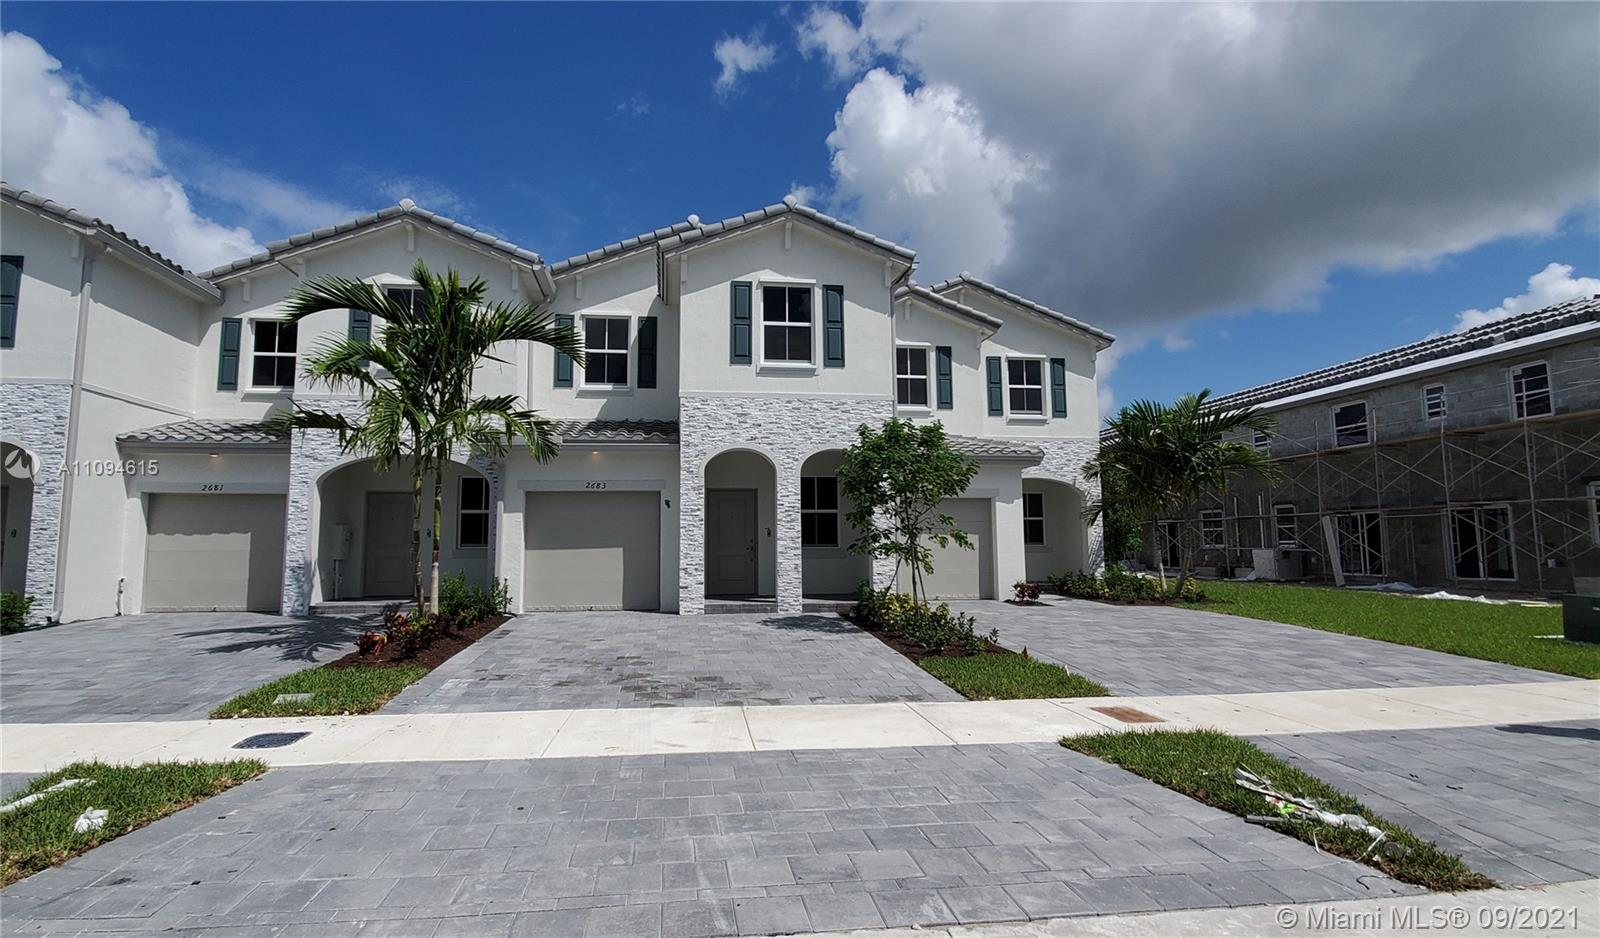 Beautiful brand new construction!! Be the first to live in this beautiful 2 story new townhouse with garage in the heart of Homestead. 3Bath 2.5Bath, new stainless steel appliances, tile floor in main areas and the second floor carpet minutes from the Florida turnpike, close to Baptist hospital, near shopping centers and new restaurants, 20 minutes from key largo, minutes away from the Homestead air base. The property is easy to show. New washer and dryer will be installed.